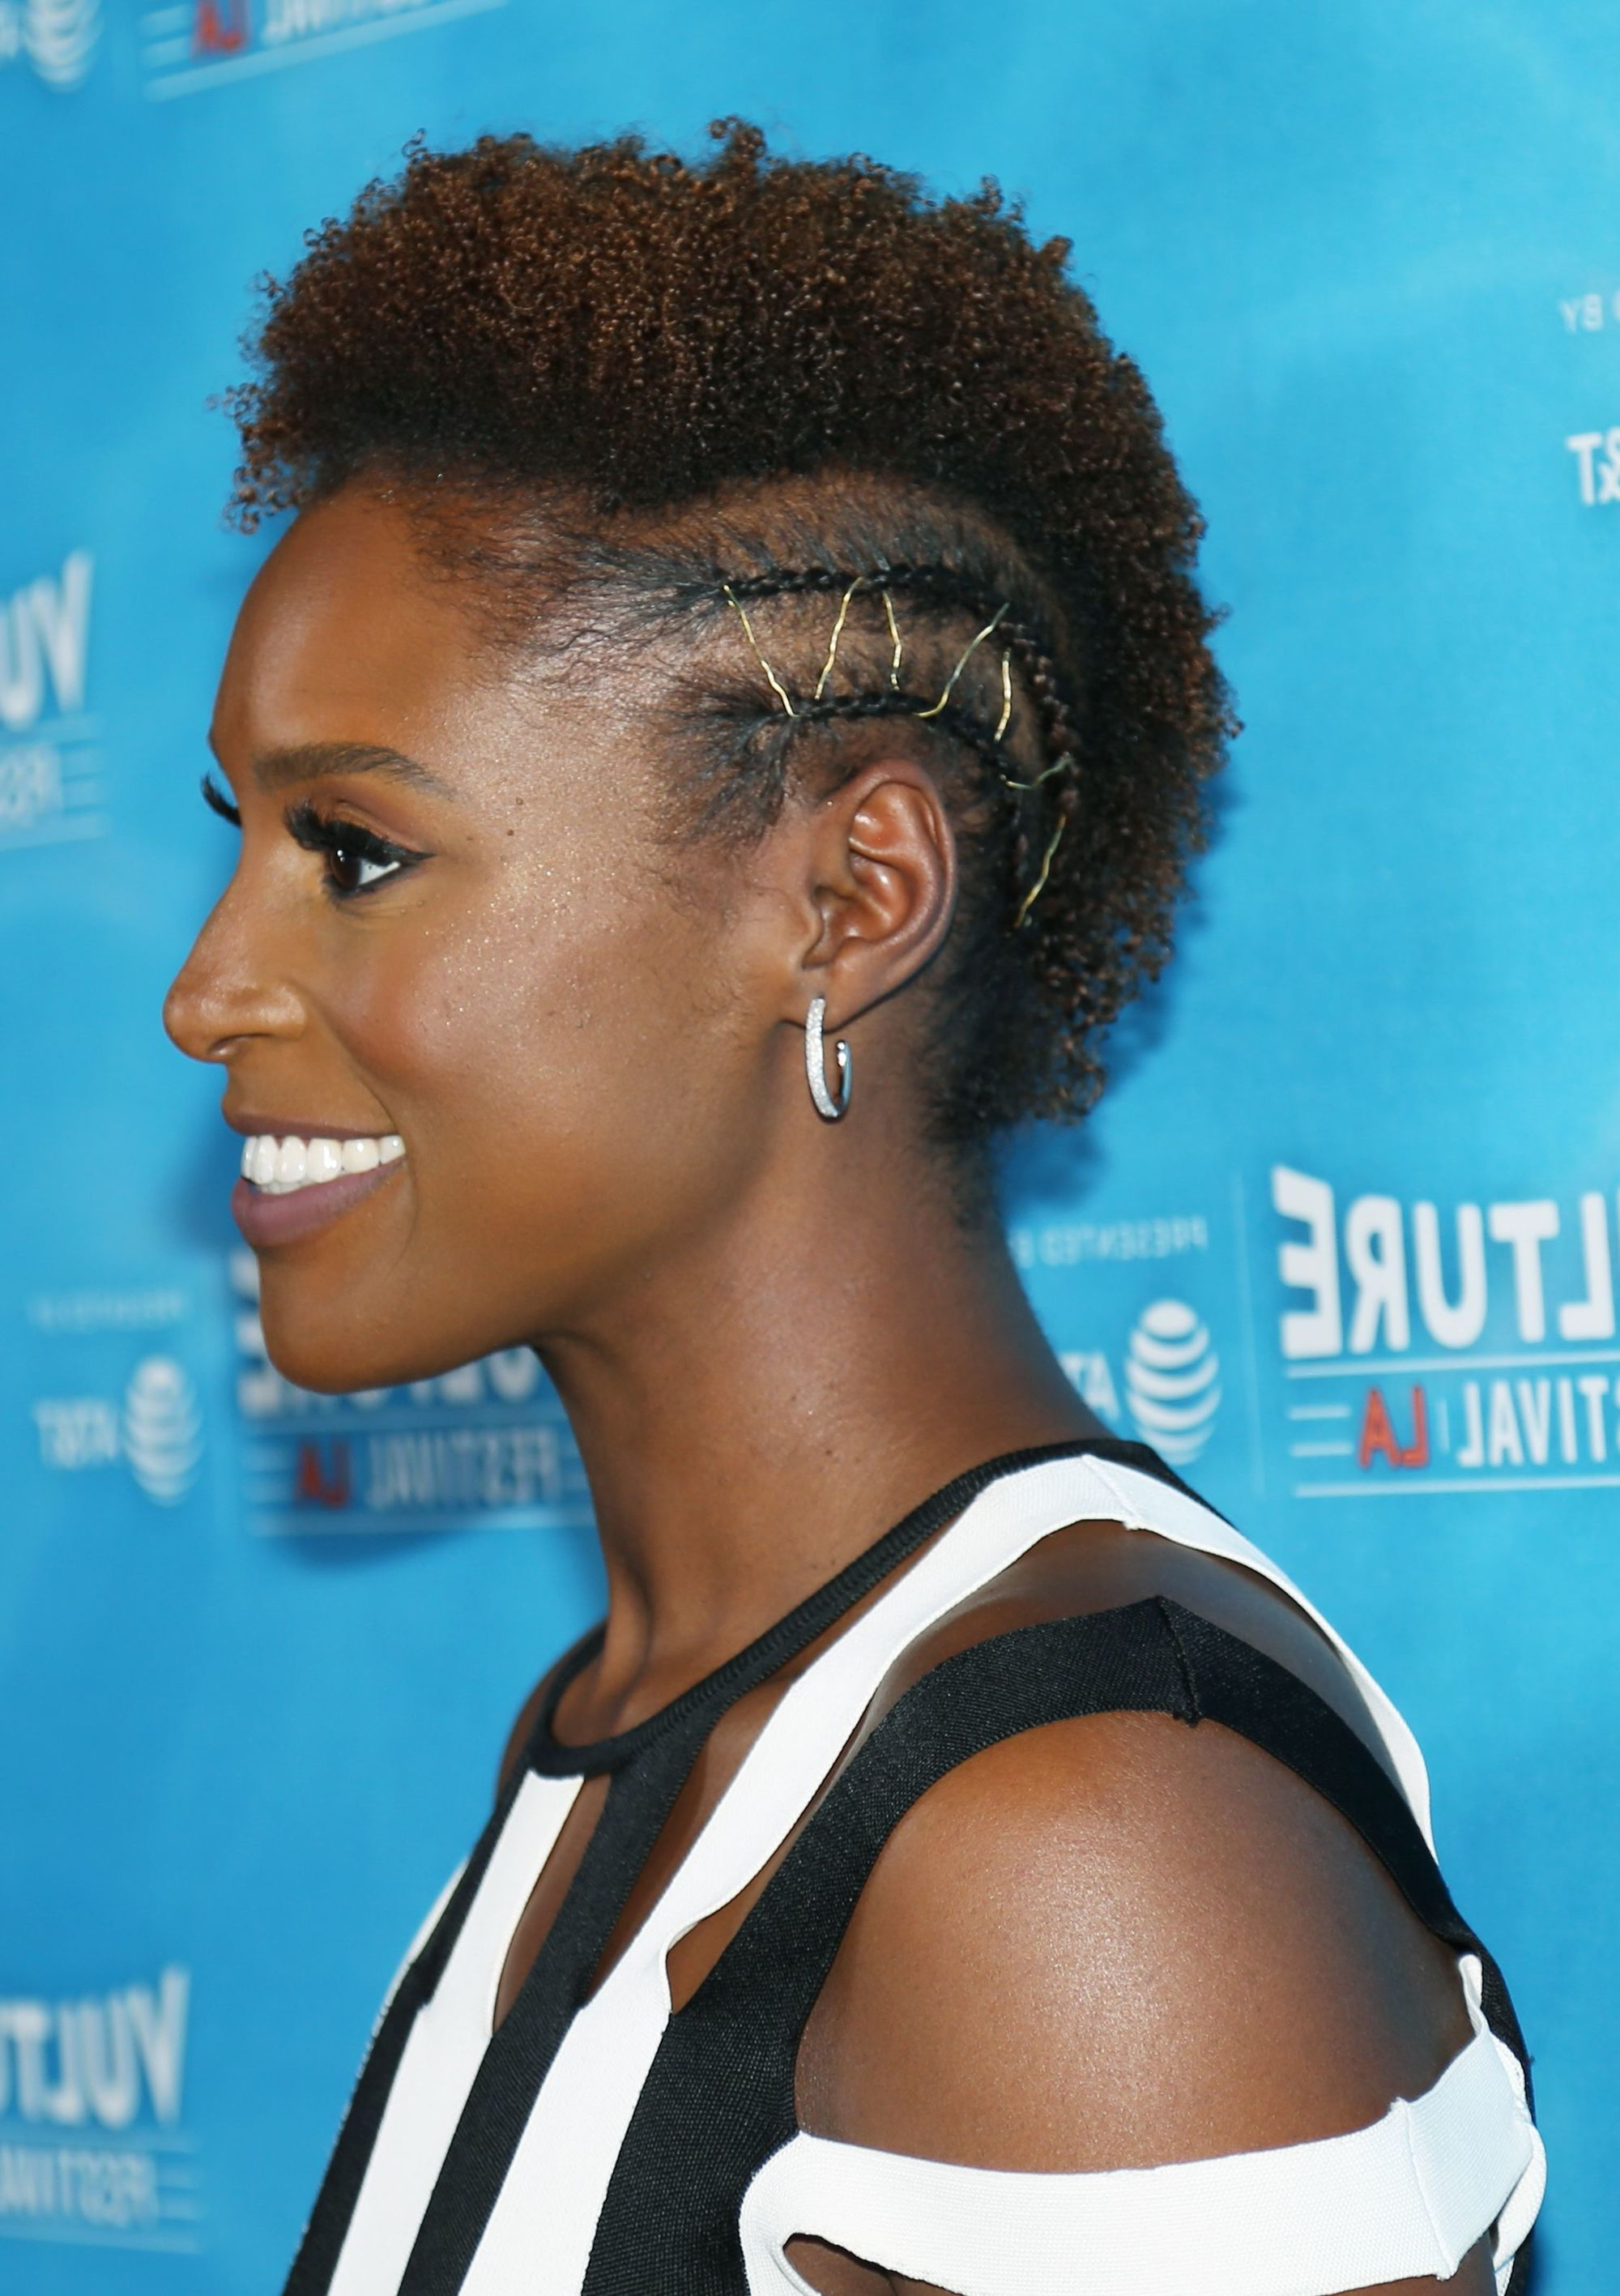 2021 Afro Mohawk Hairstyles For Women Regarding 10 Mohawk Hairstyles For Black Women You Seriously Need To (View 3 of 20)